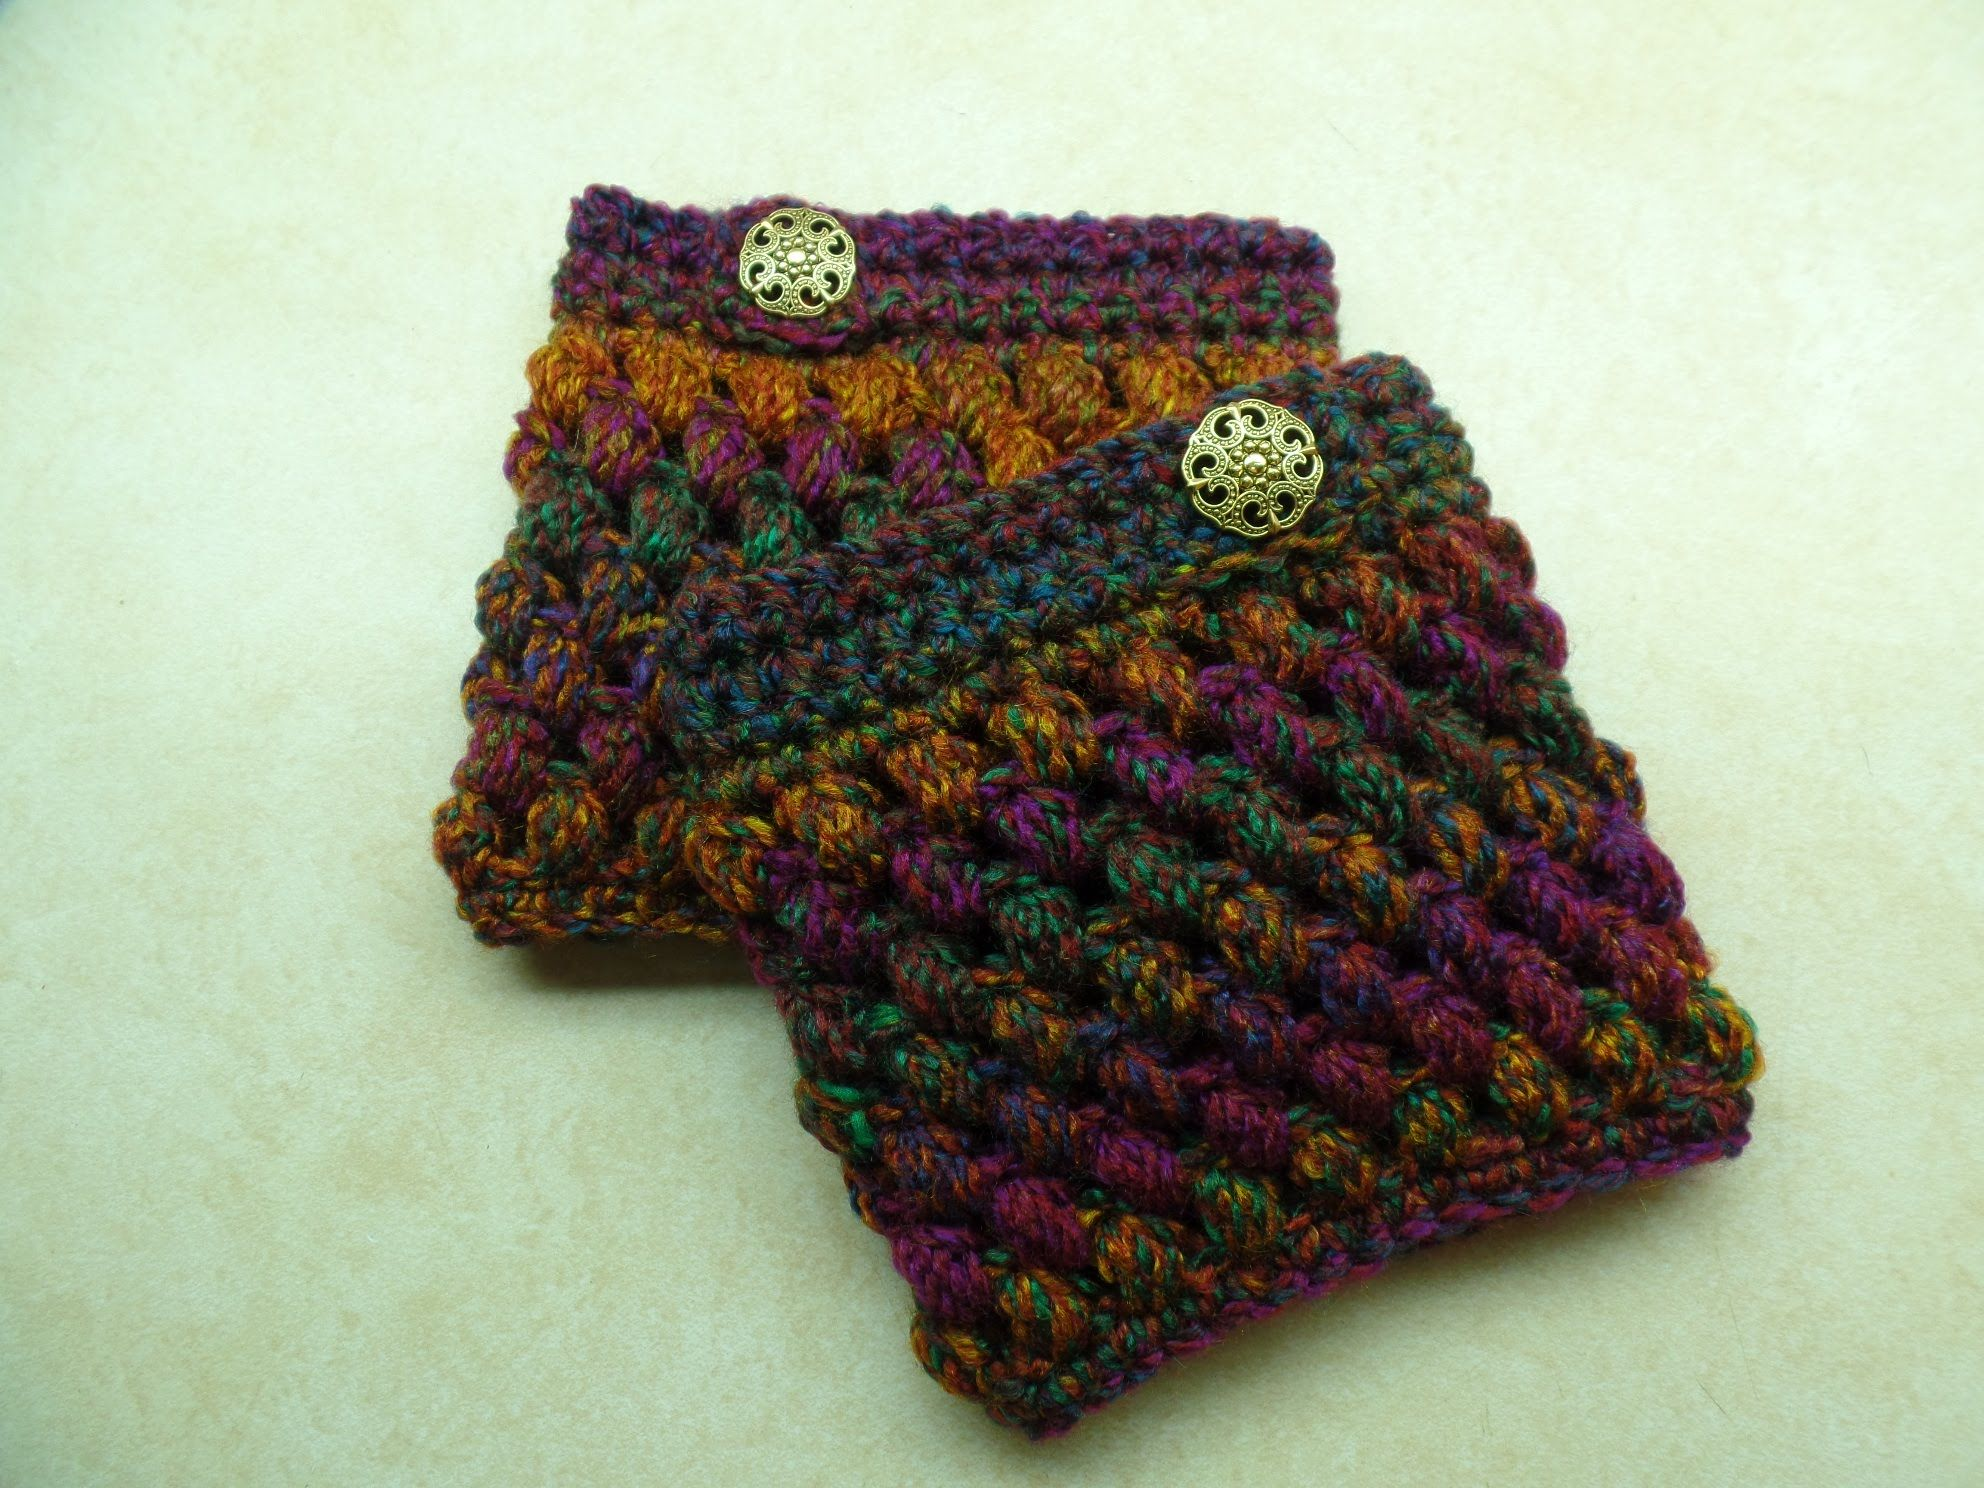 Crochet How To Crochet Puff Cuffs Puff Stitch Boot Cuffs Tutorial